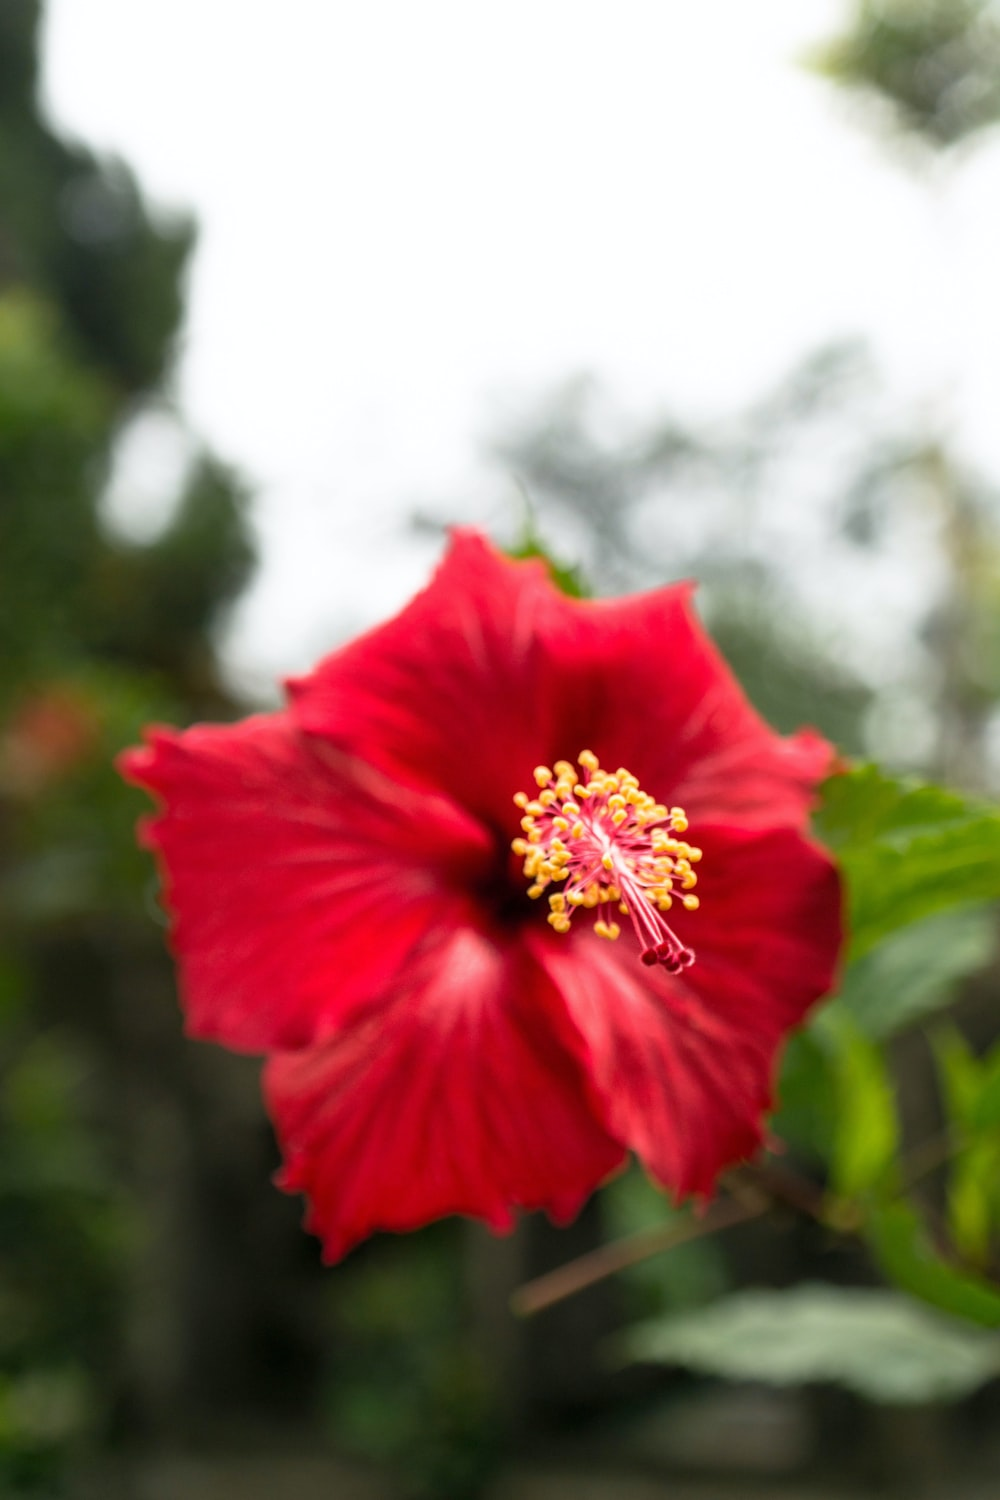 red hibiscus flower during daytime